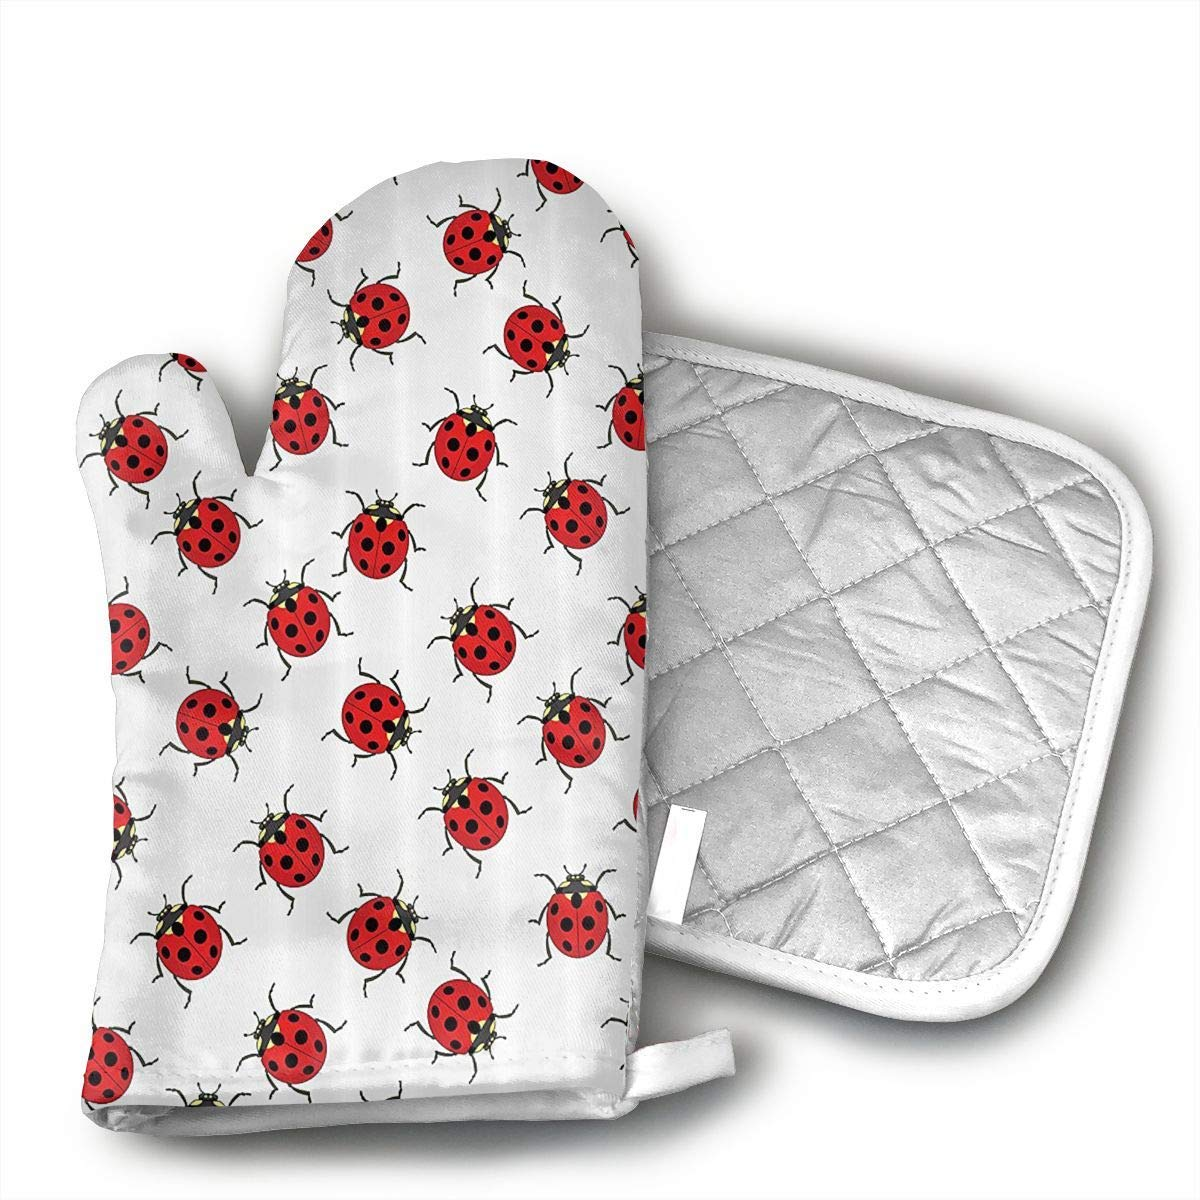 Ladybugs Oven Mitts Grilling Gloves Heat Resistant Gloves BBQ Kitchen Oven Mitts Long Waterproof Non-Slip Potholder for Barbecue Cooking Baking BBQ Gloves